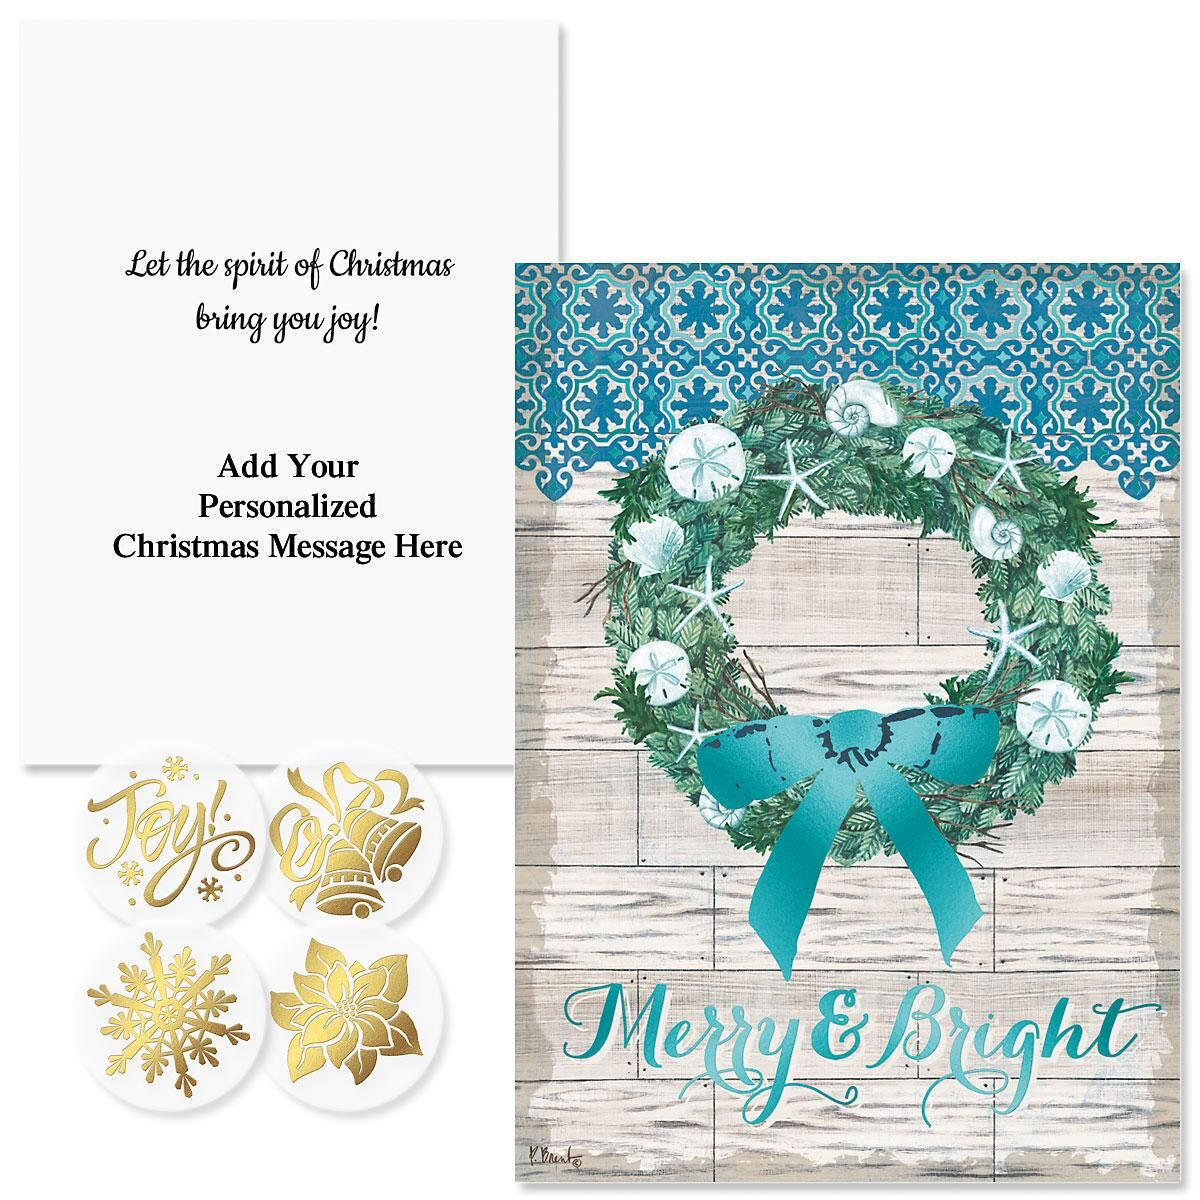 Coastal Christmas Christmas Cards - Personalized